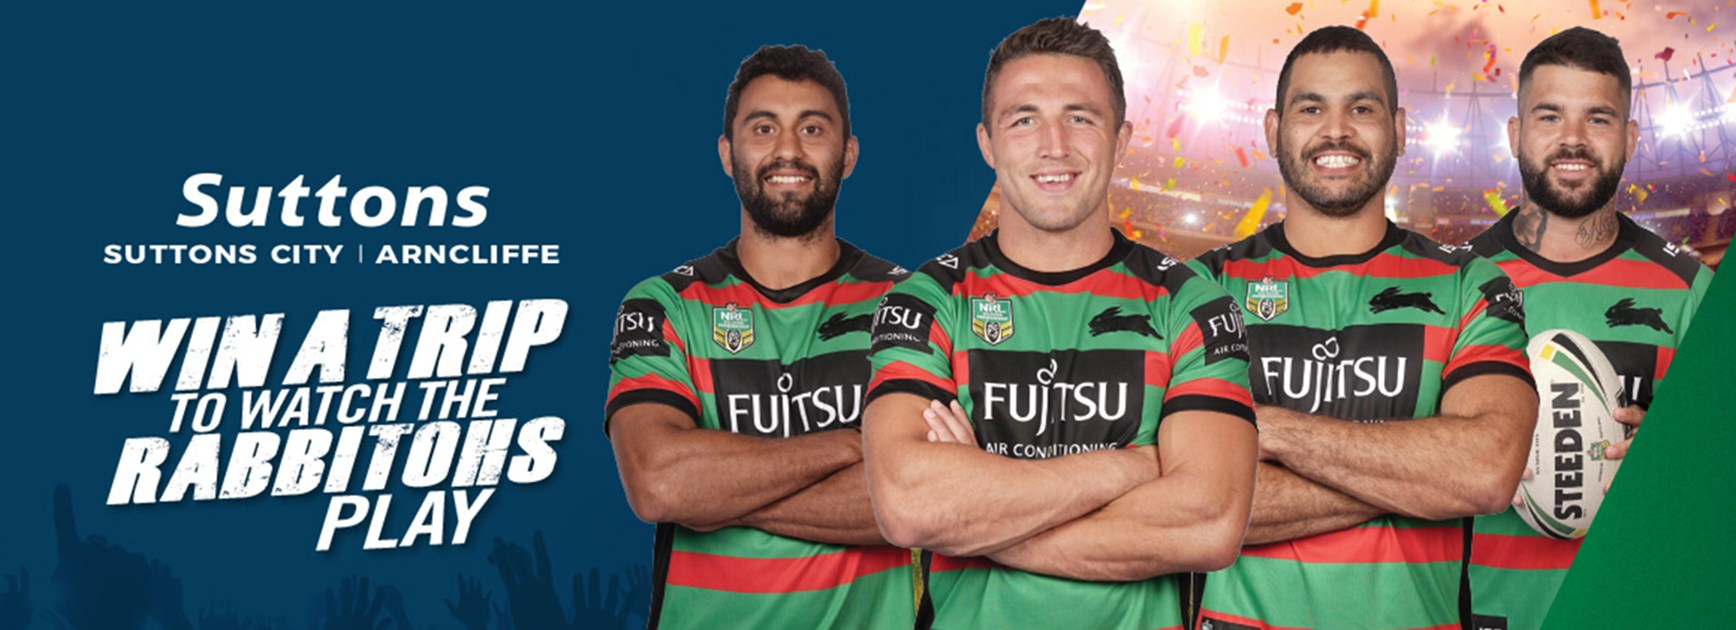 Win a trip to see the Rabbitohs play in 2019 thanks to Suttons